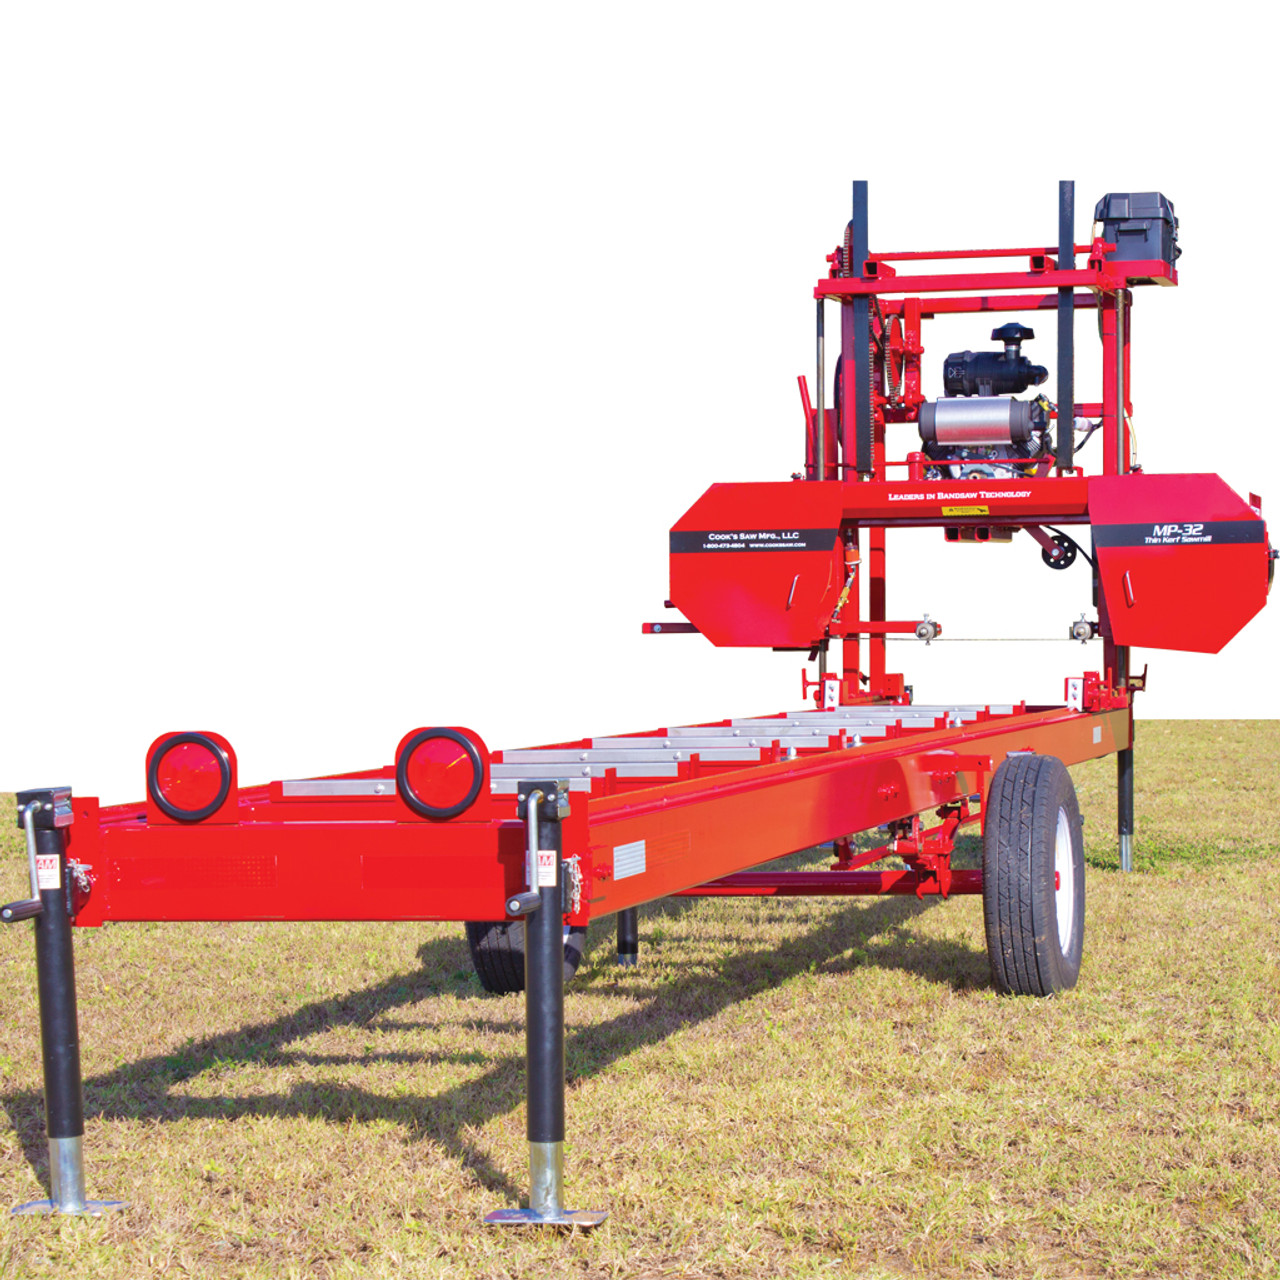 Portable Sawmill Harbor Freight